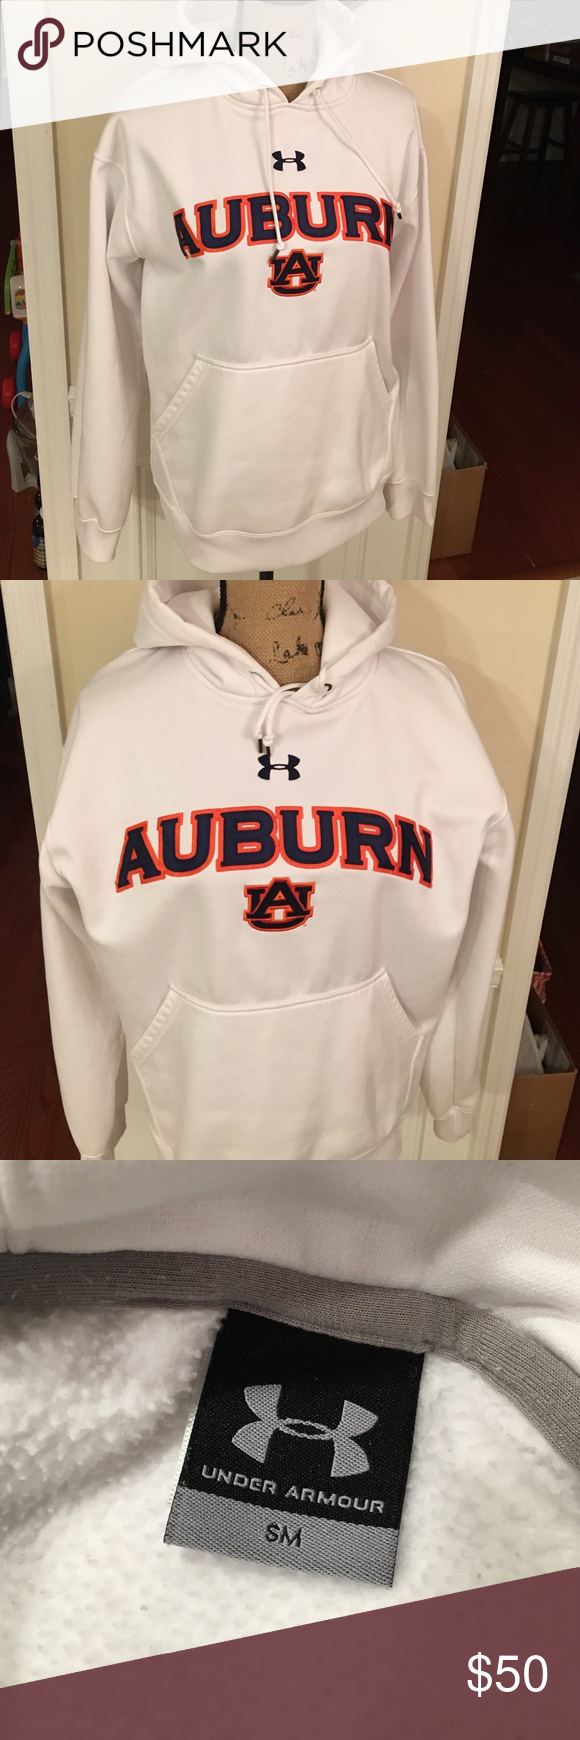 AU Auburn University Under Armour hoodie AU Auburn University, Like new , Under Armour Hoodie, women's size Small, very nice , good quality, Under Armour Tops Sweatshirts & Hoodies